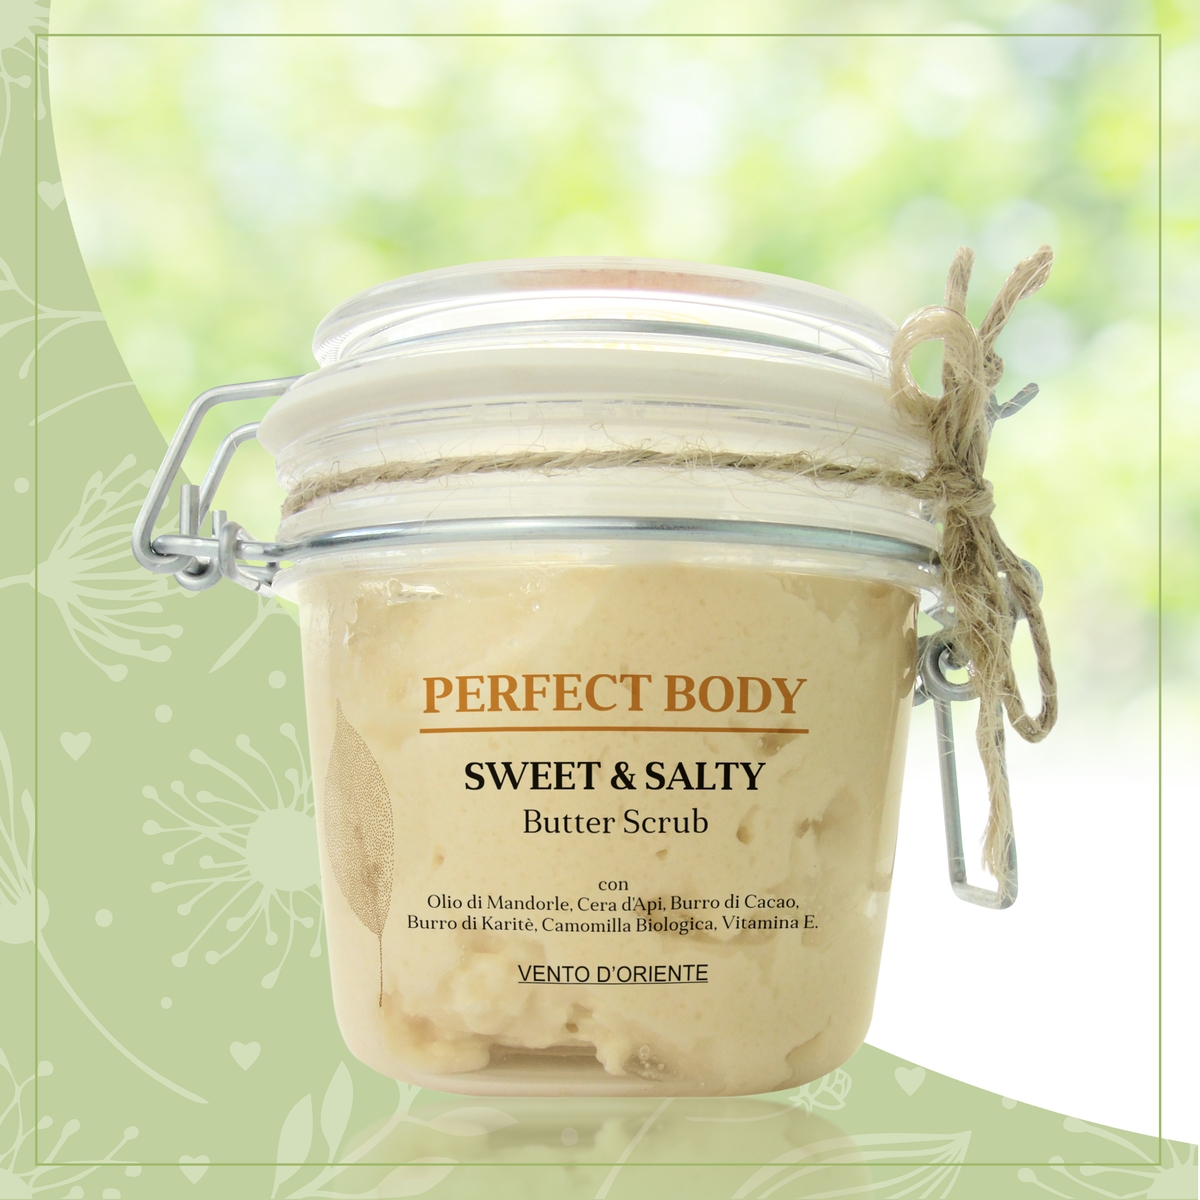 Sweet & Salty Butter Scrub antipollution